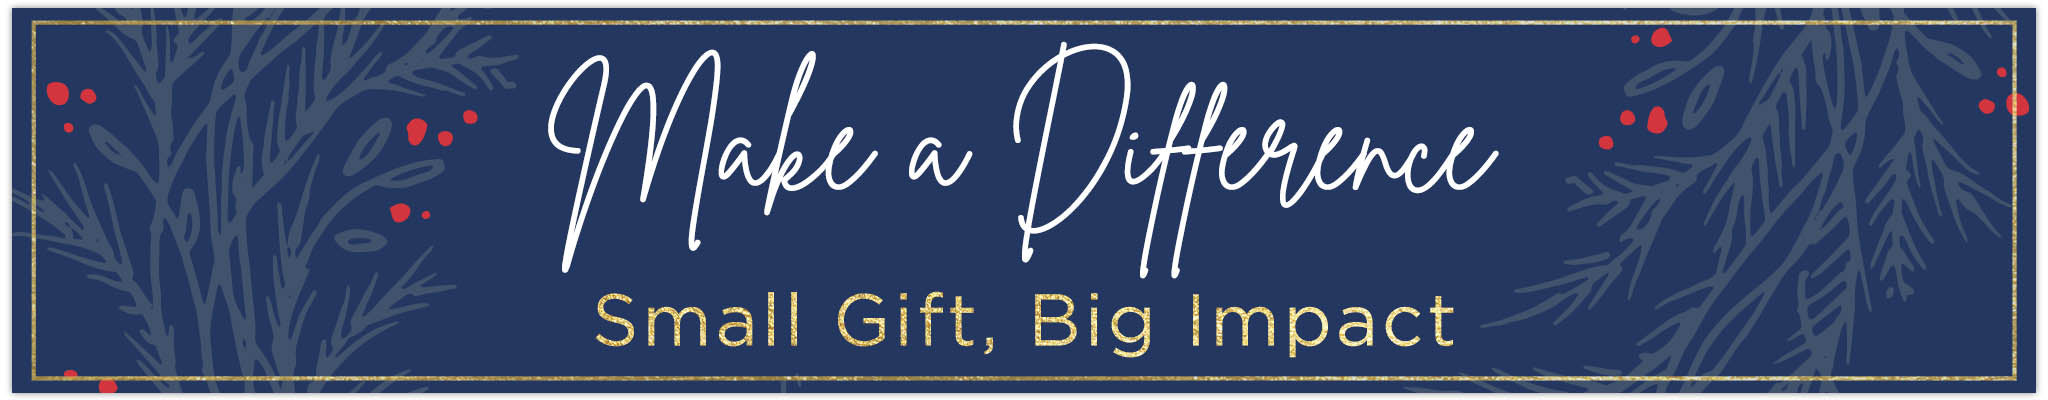 Make a Difference | Small Gift, Big Impact